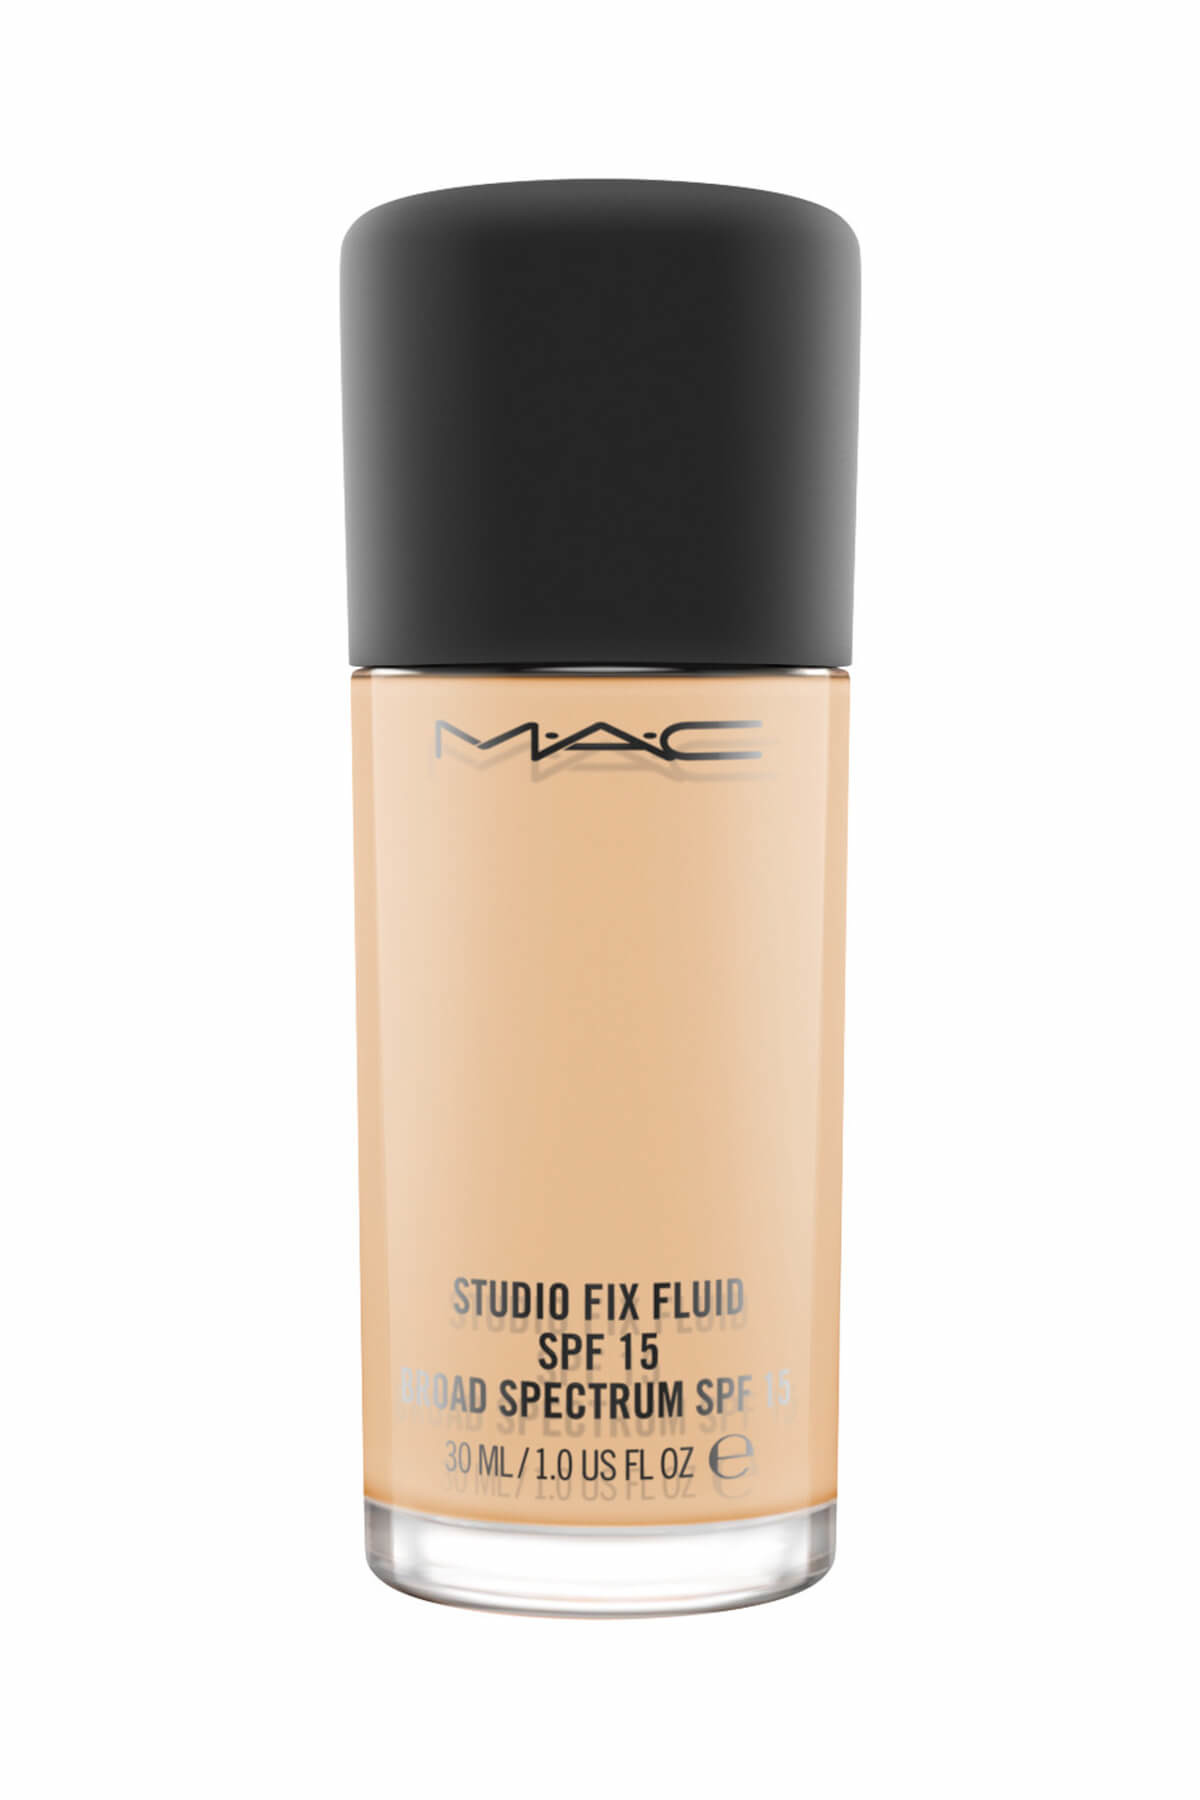 M.A.C Fondöten - Studio Fix Fluid Spf 15 NC20 30 ml 773602103485 1